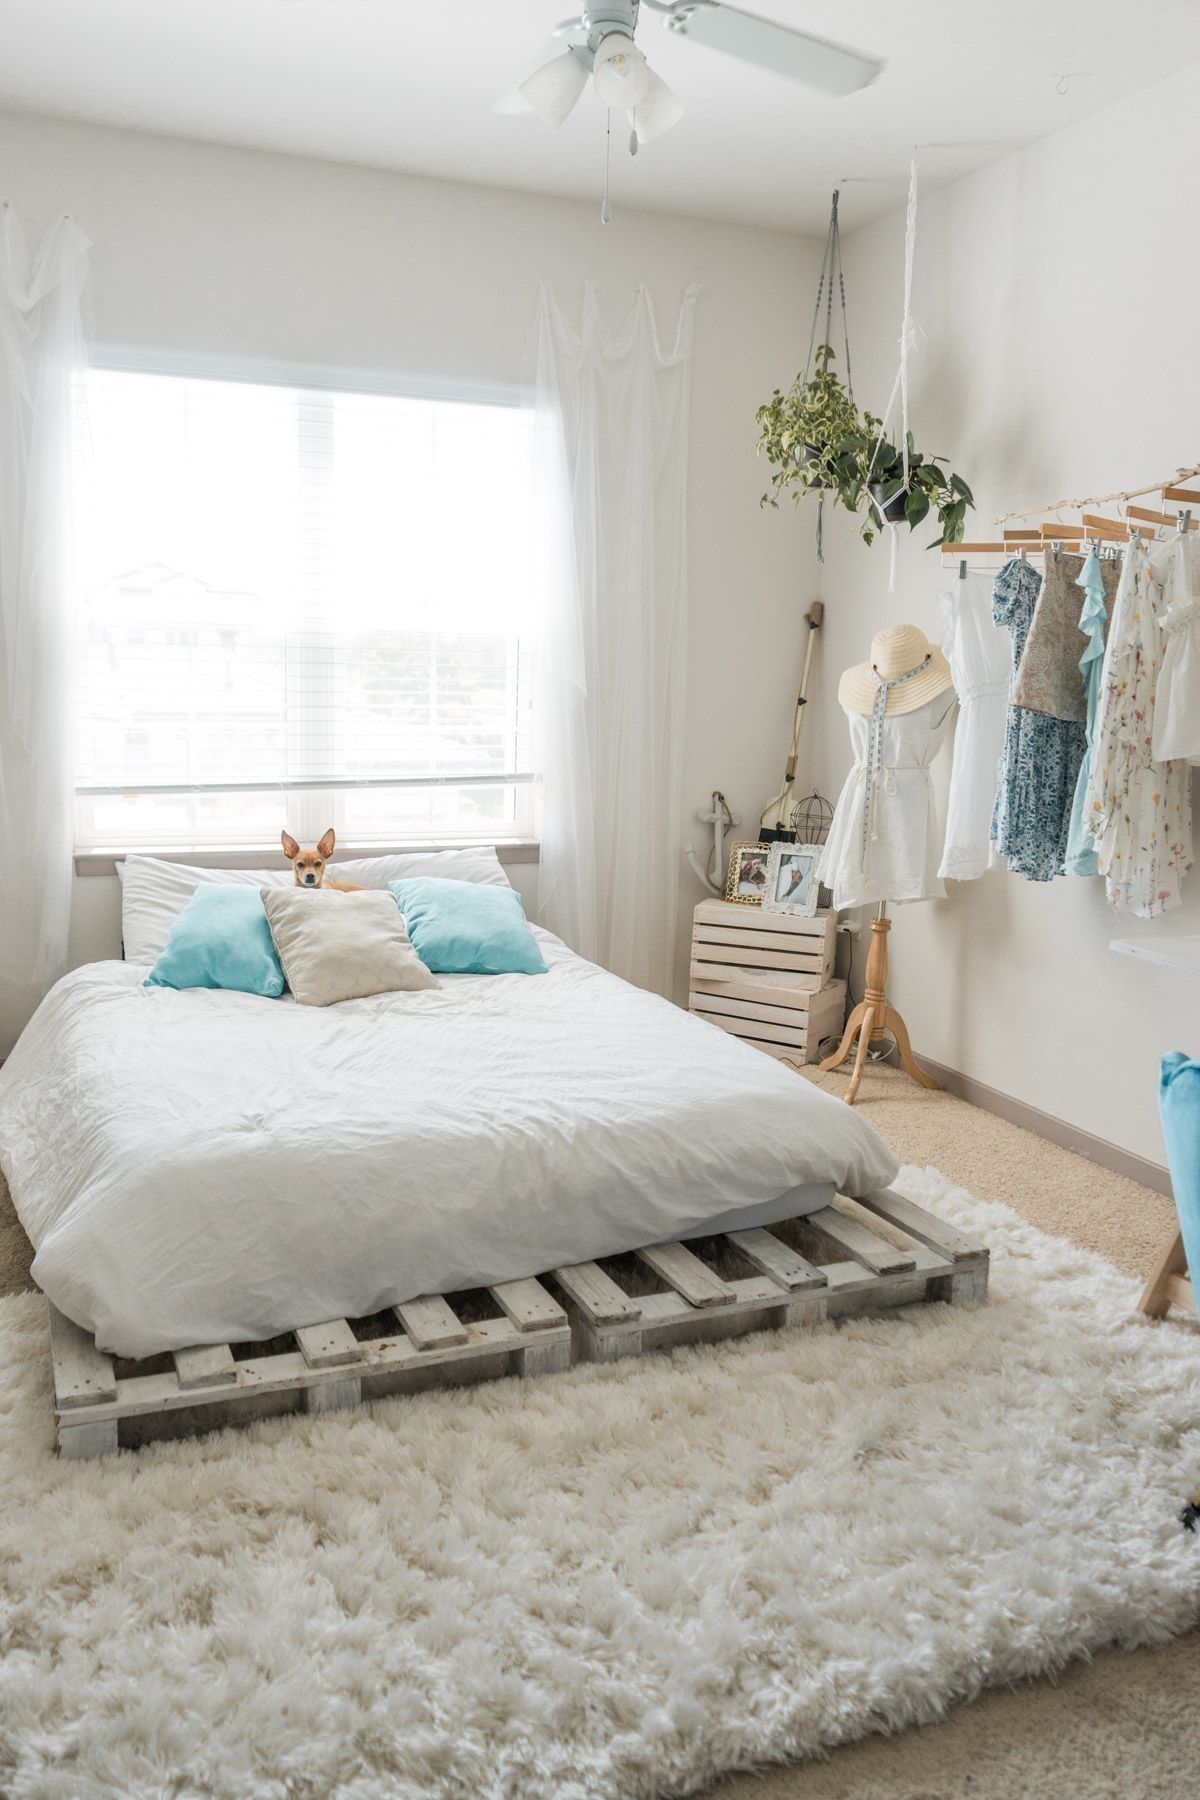 51 Awesome Boho Decorating Ideas For Your Bedroom images